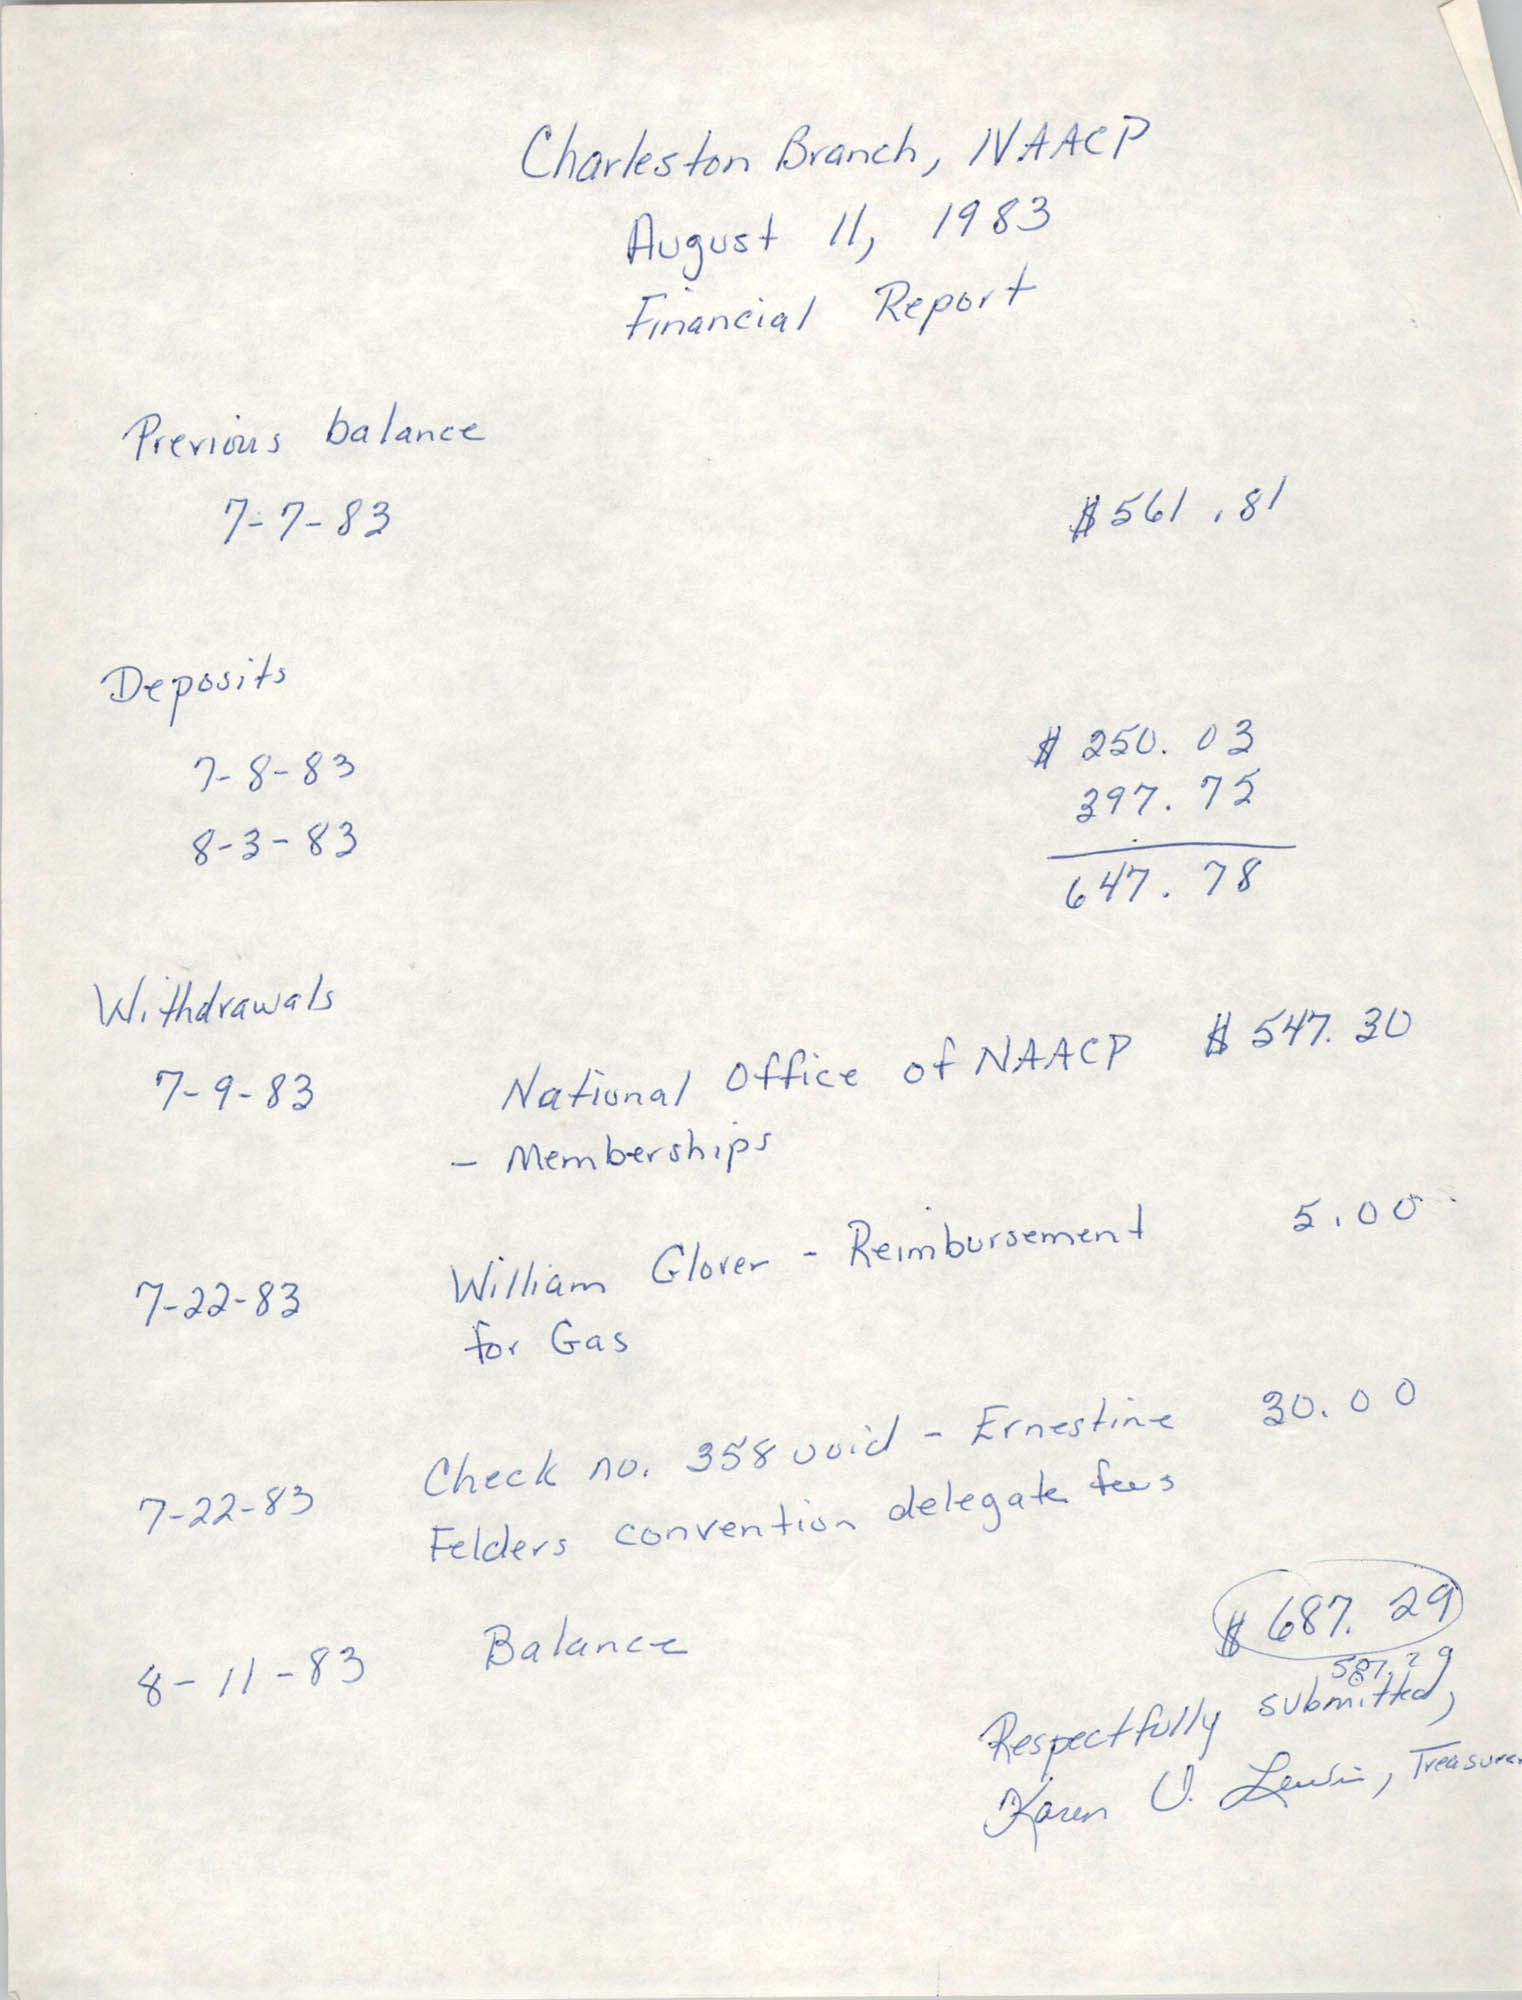 Charleston Branch of the NAACP Financial Report, August 11, 1983